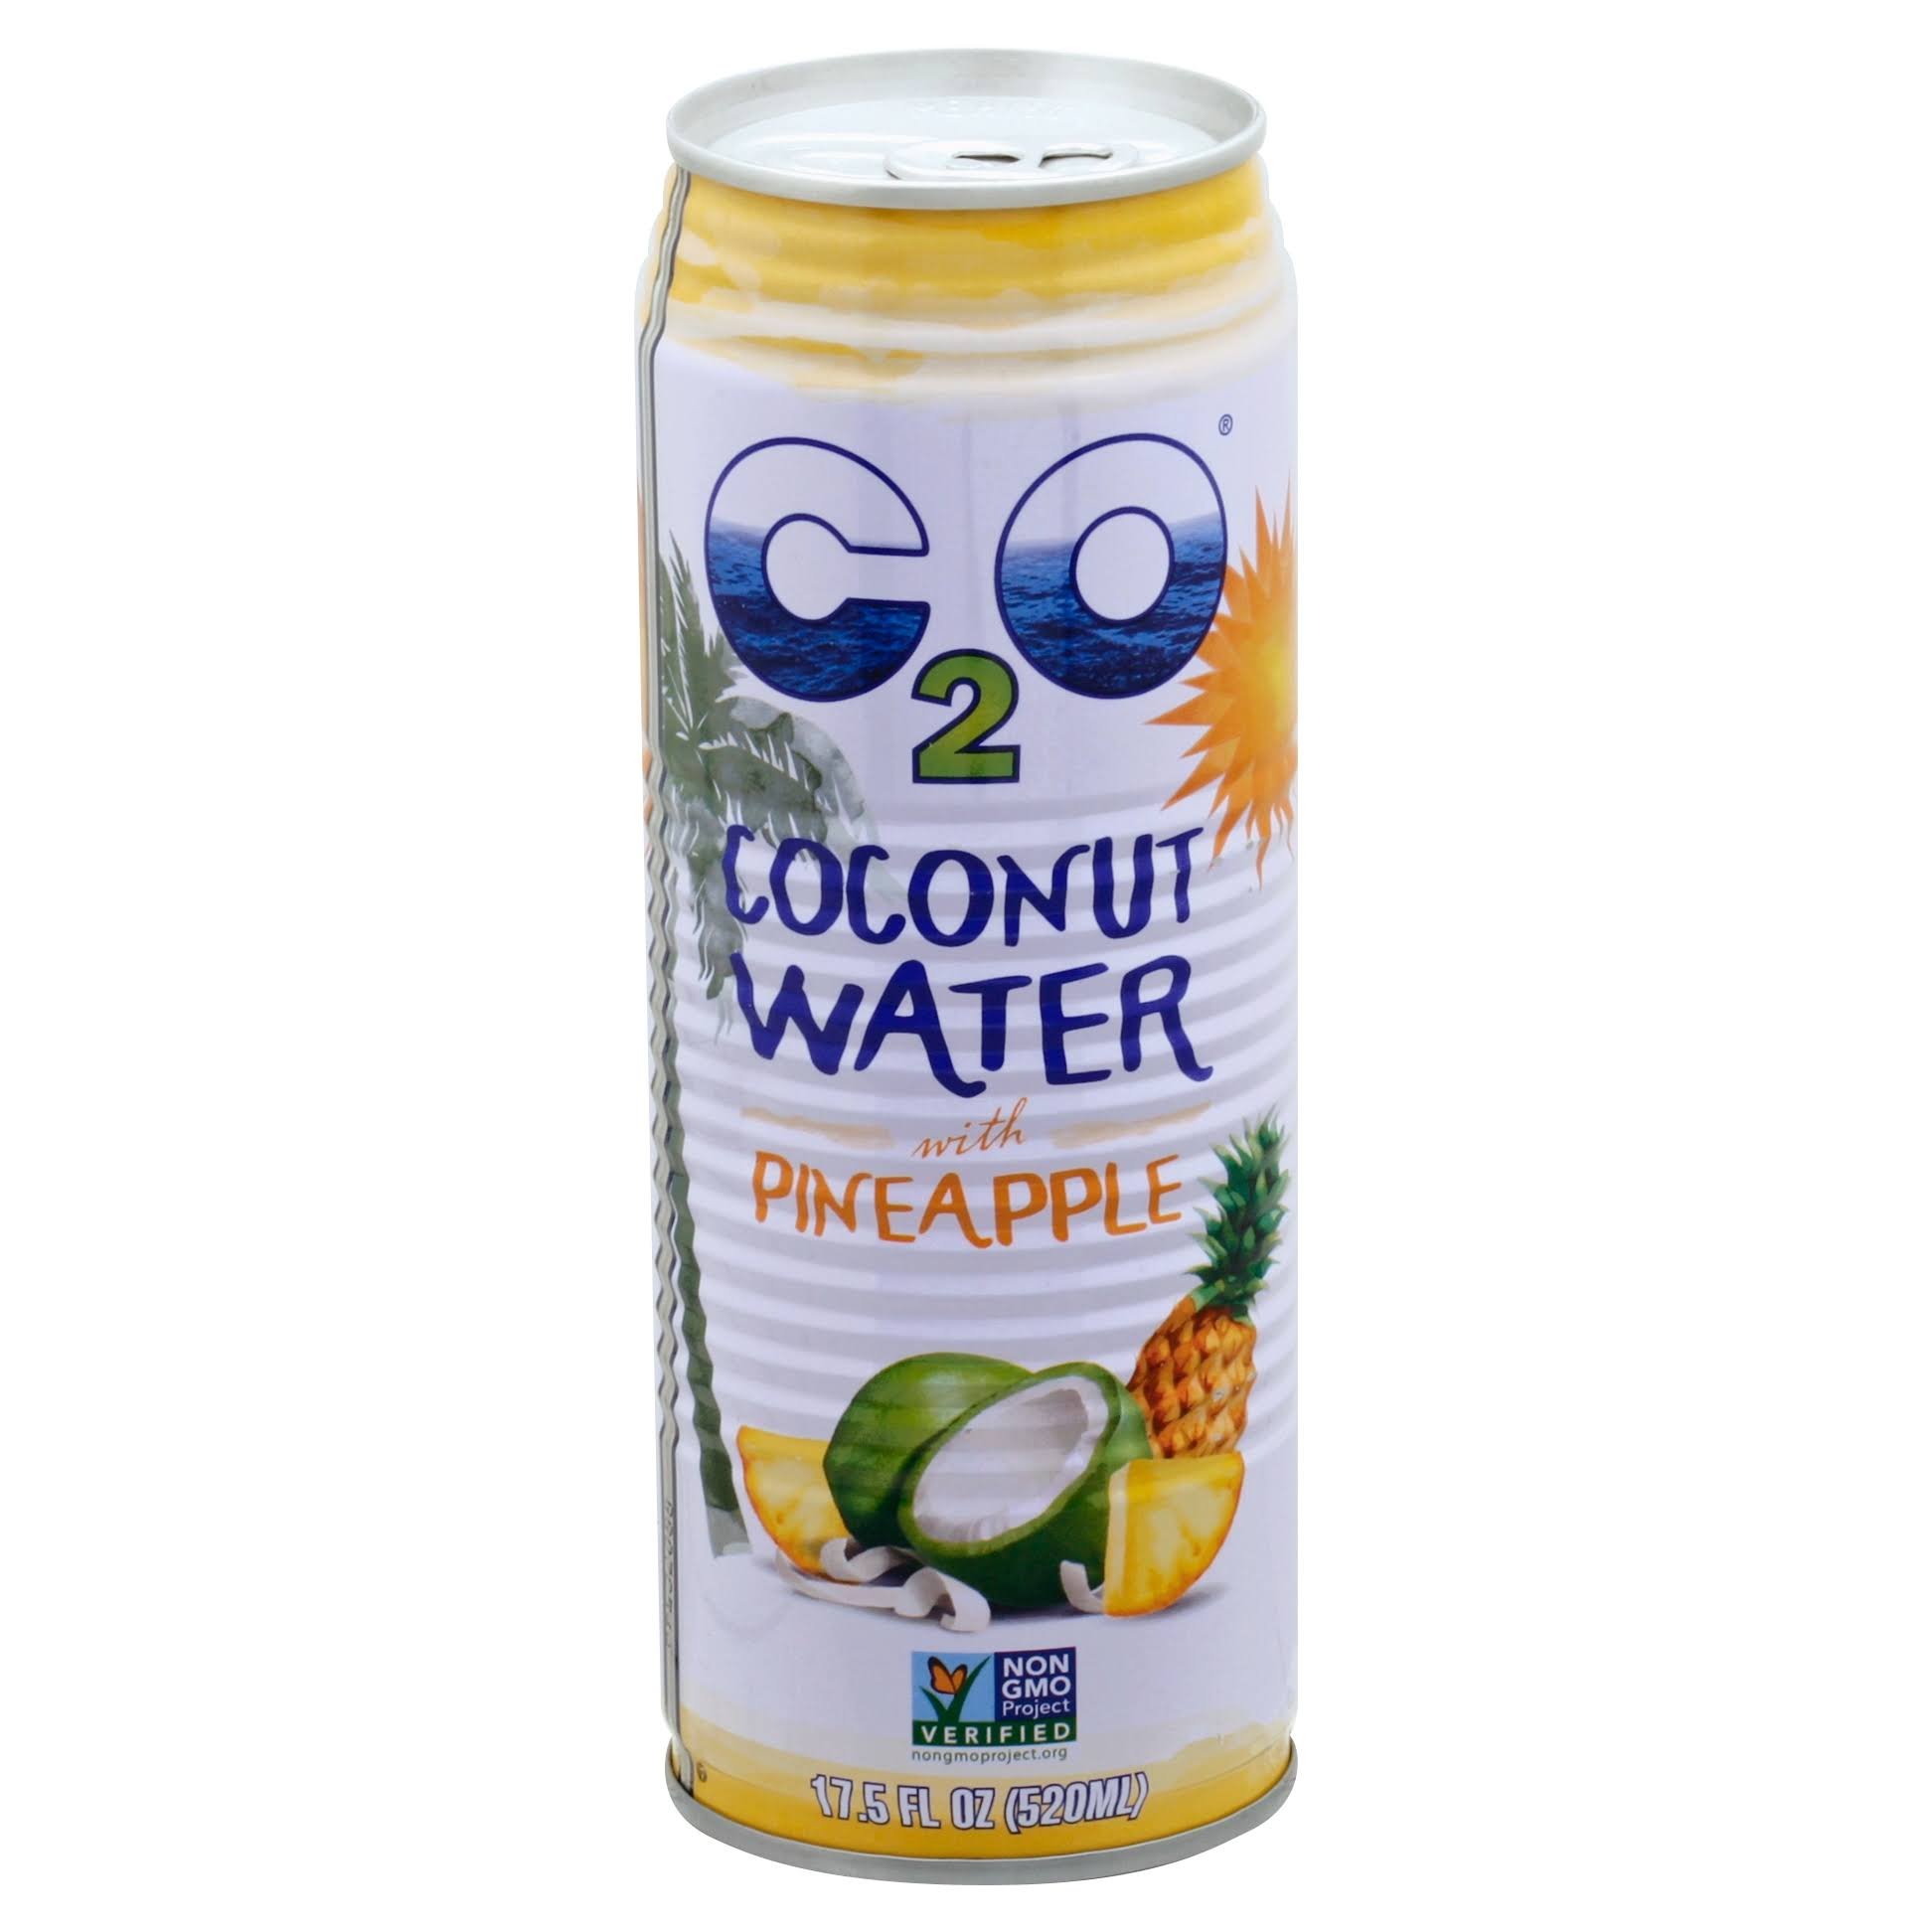 C2O Coconut Water, with Pineapple - 17.5 fl oz